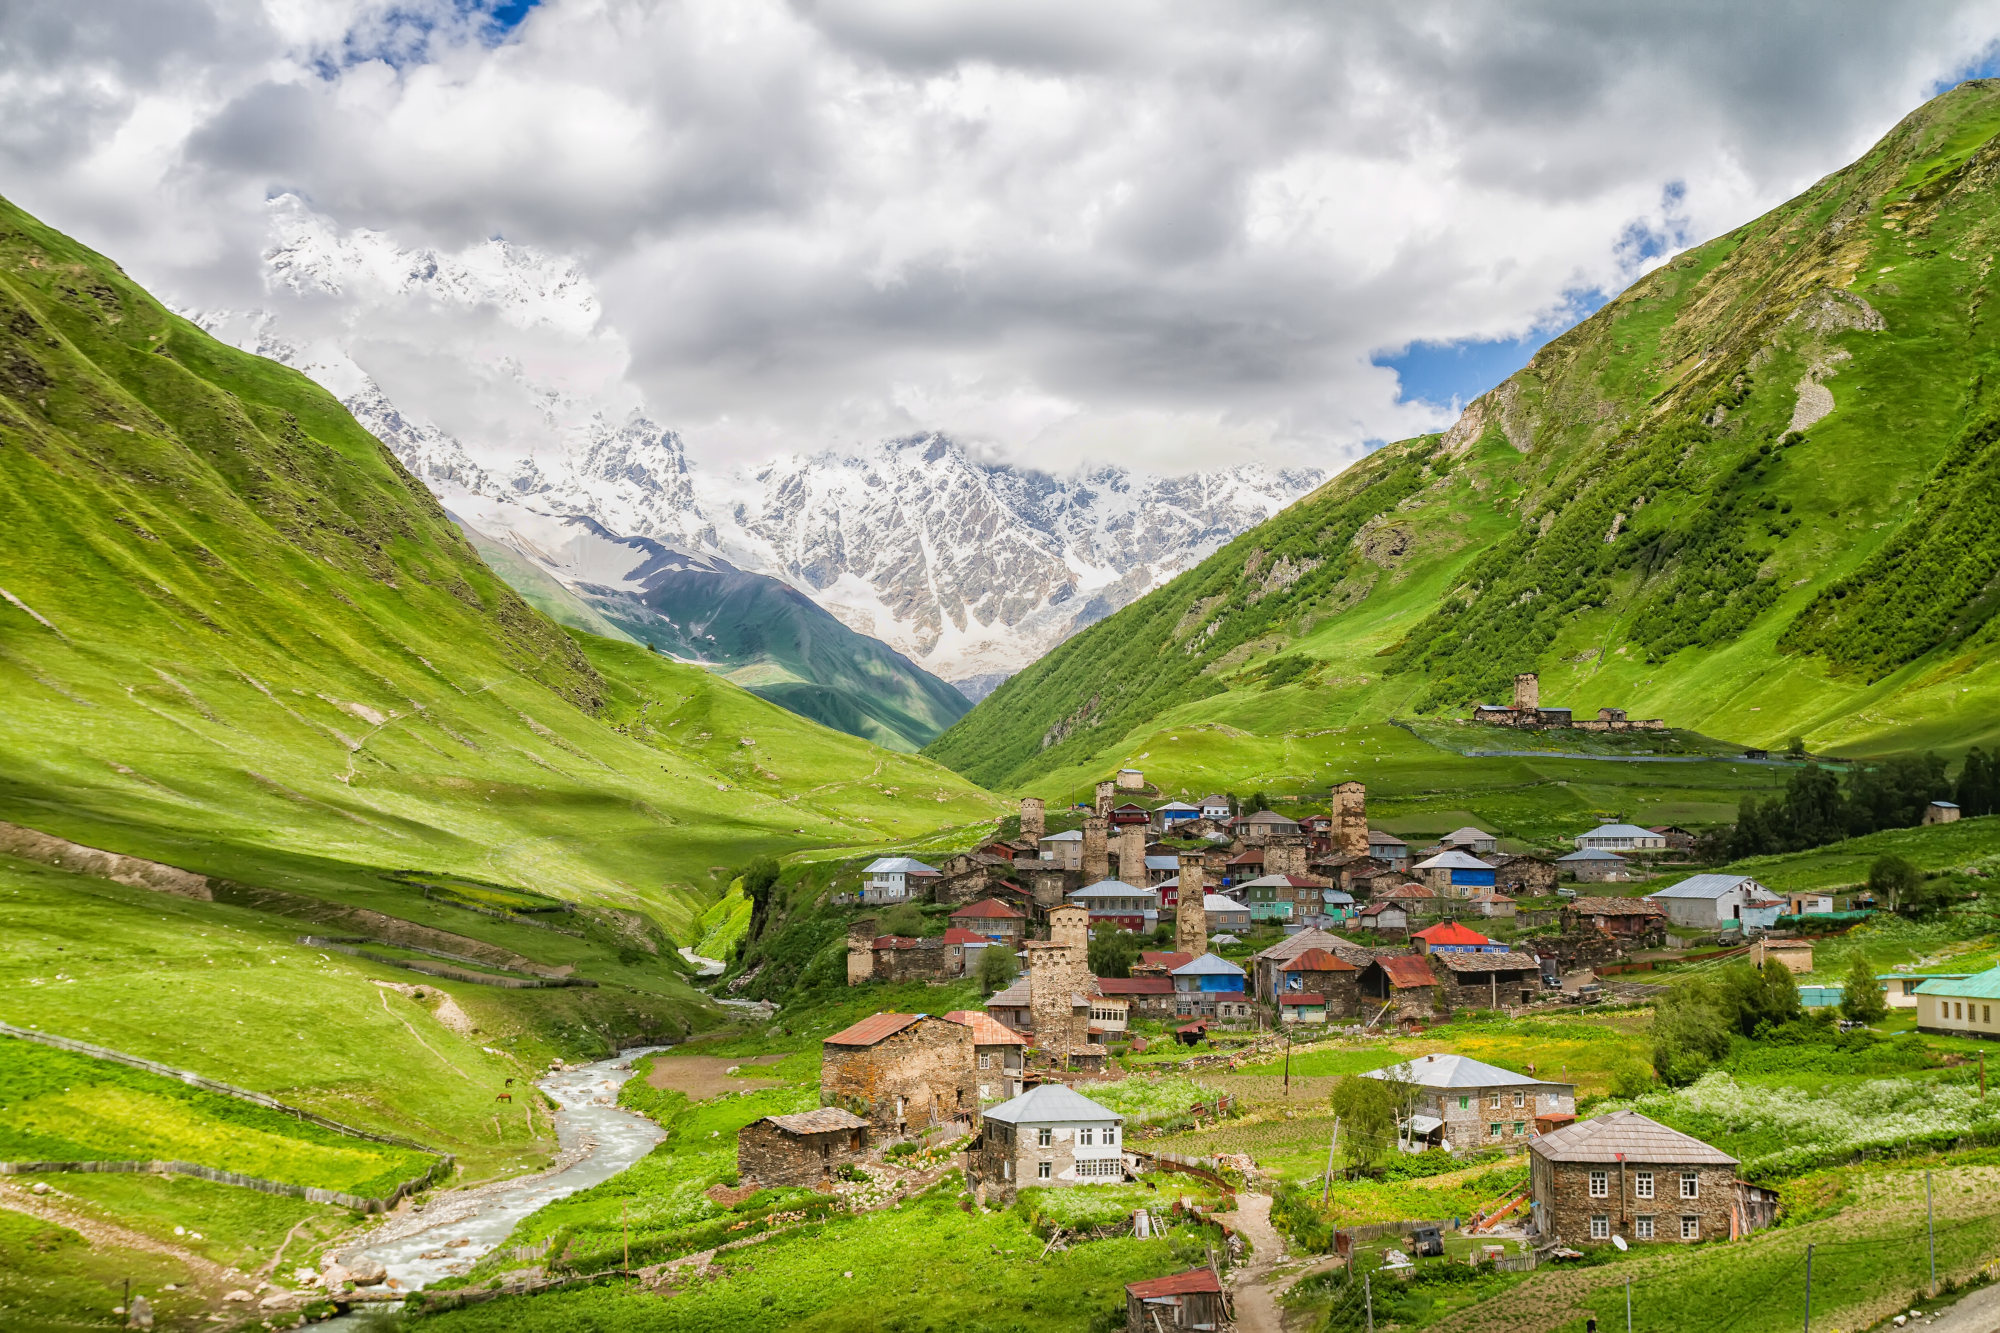 Ushguli - the highest inhabited village in Europe